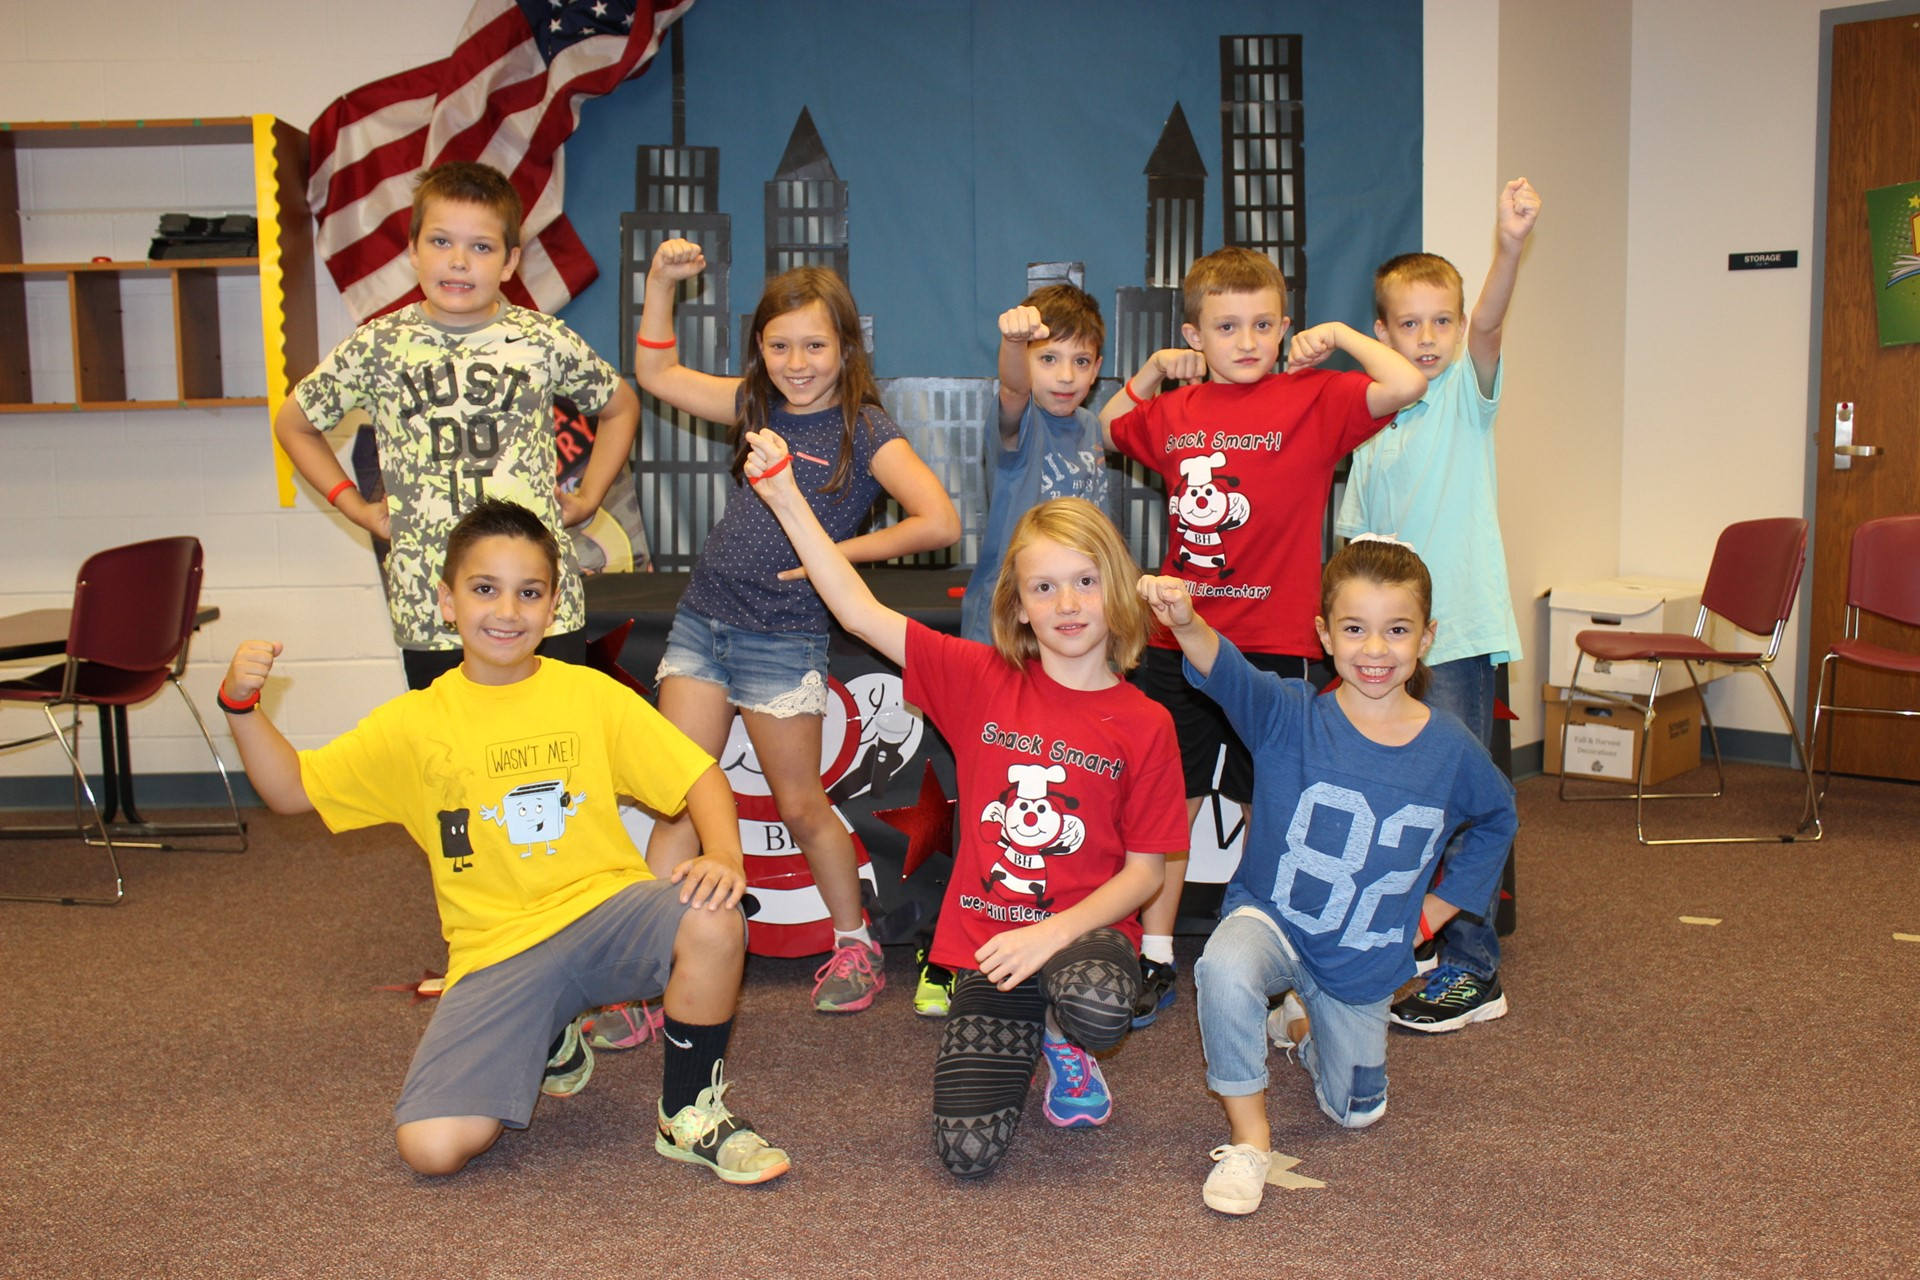 Bhheroes Throughout Peters Township School District Academic Calendar